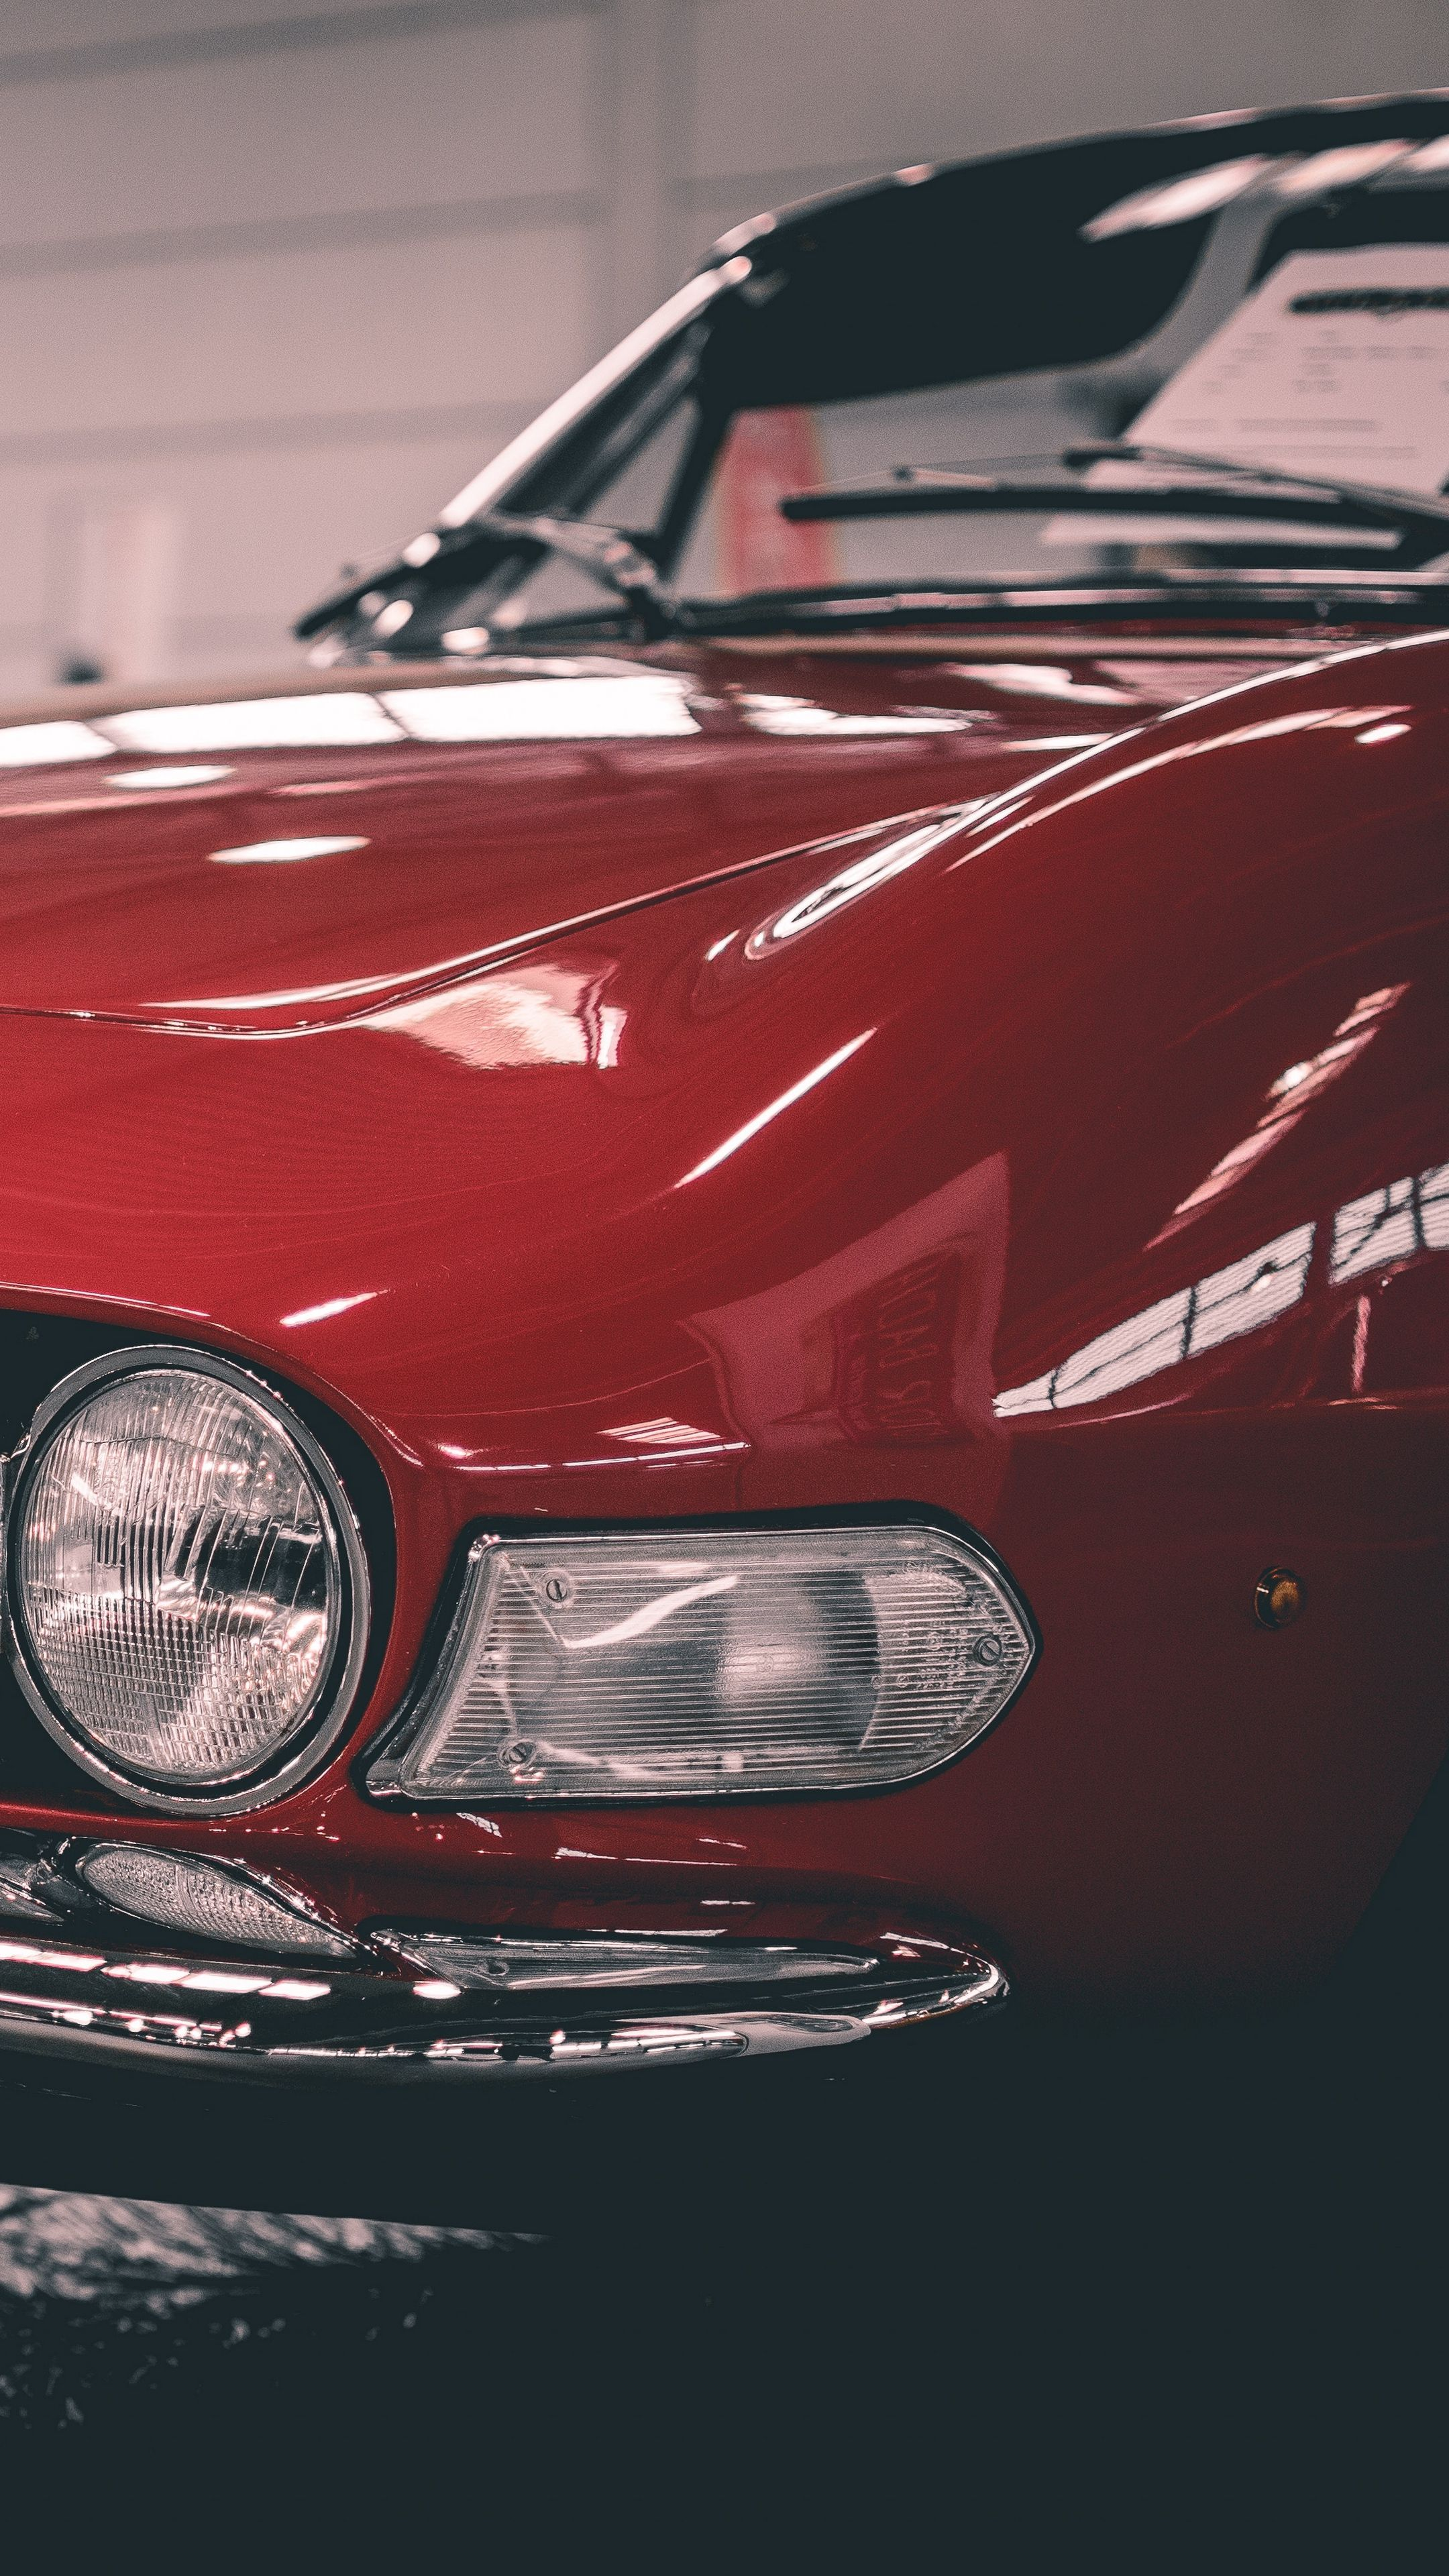 Cars Auto Retro Classic Android Wallpapers 4k Hd Cars